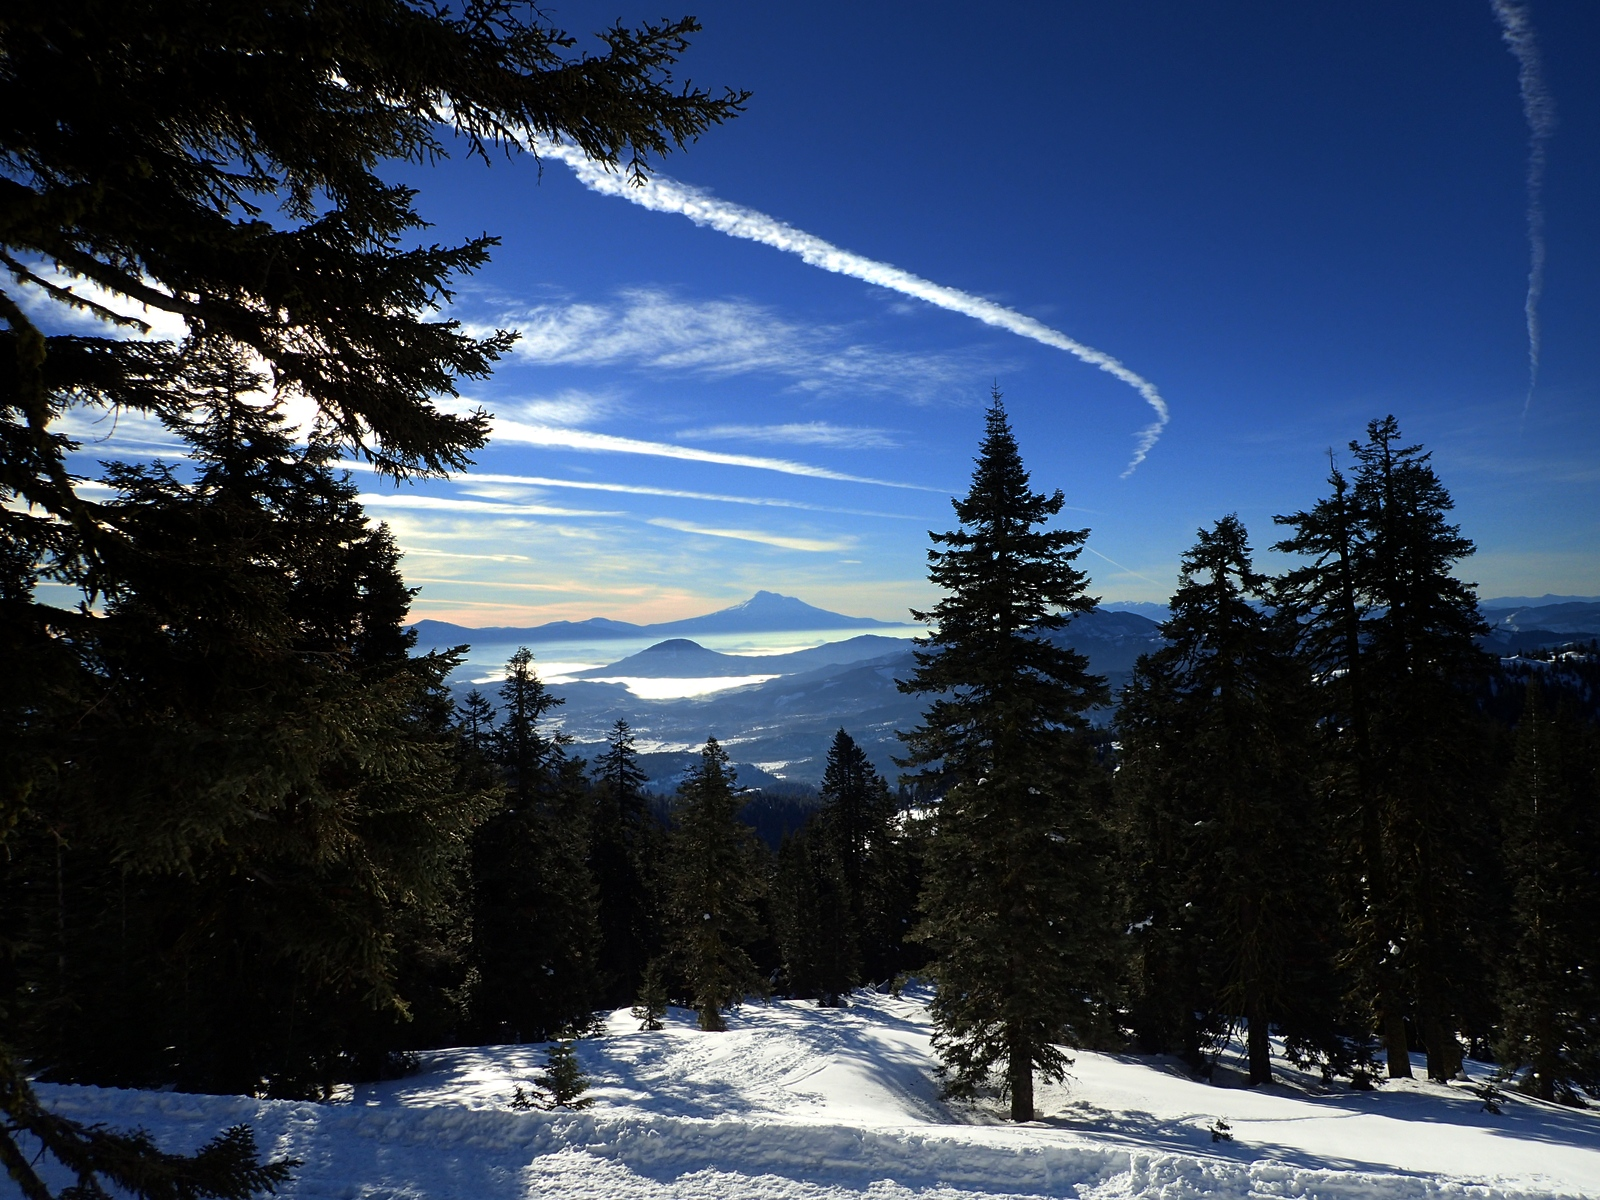 McDonald Peak Mount Ashland Oregon